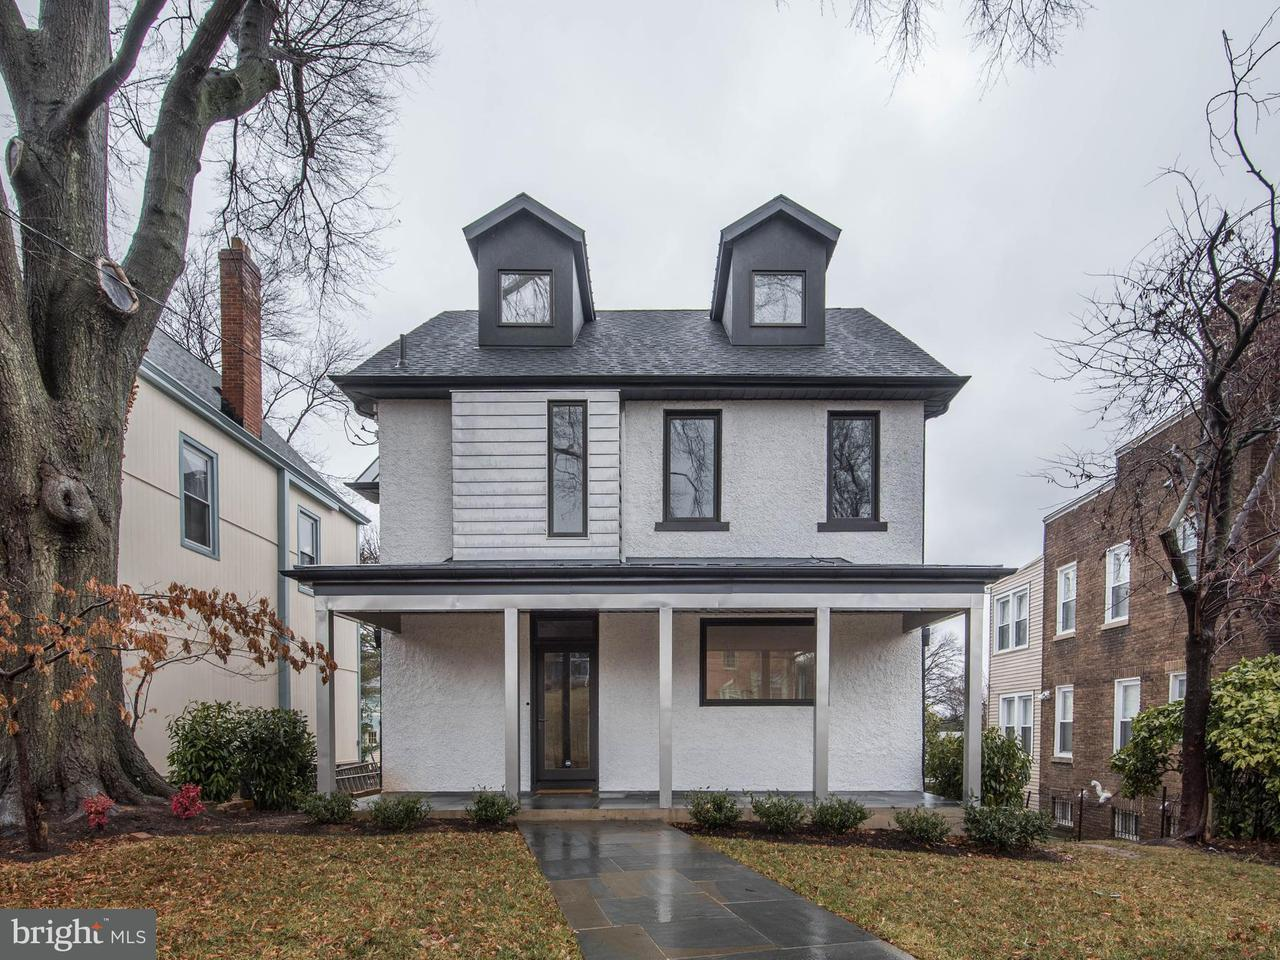 Single Family for Sale at 1504 Newton St NE Washington, District Of Columbia 20017 United States